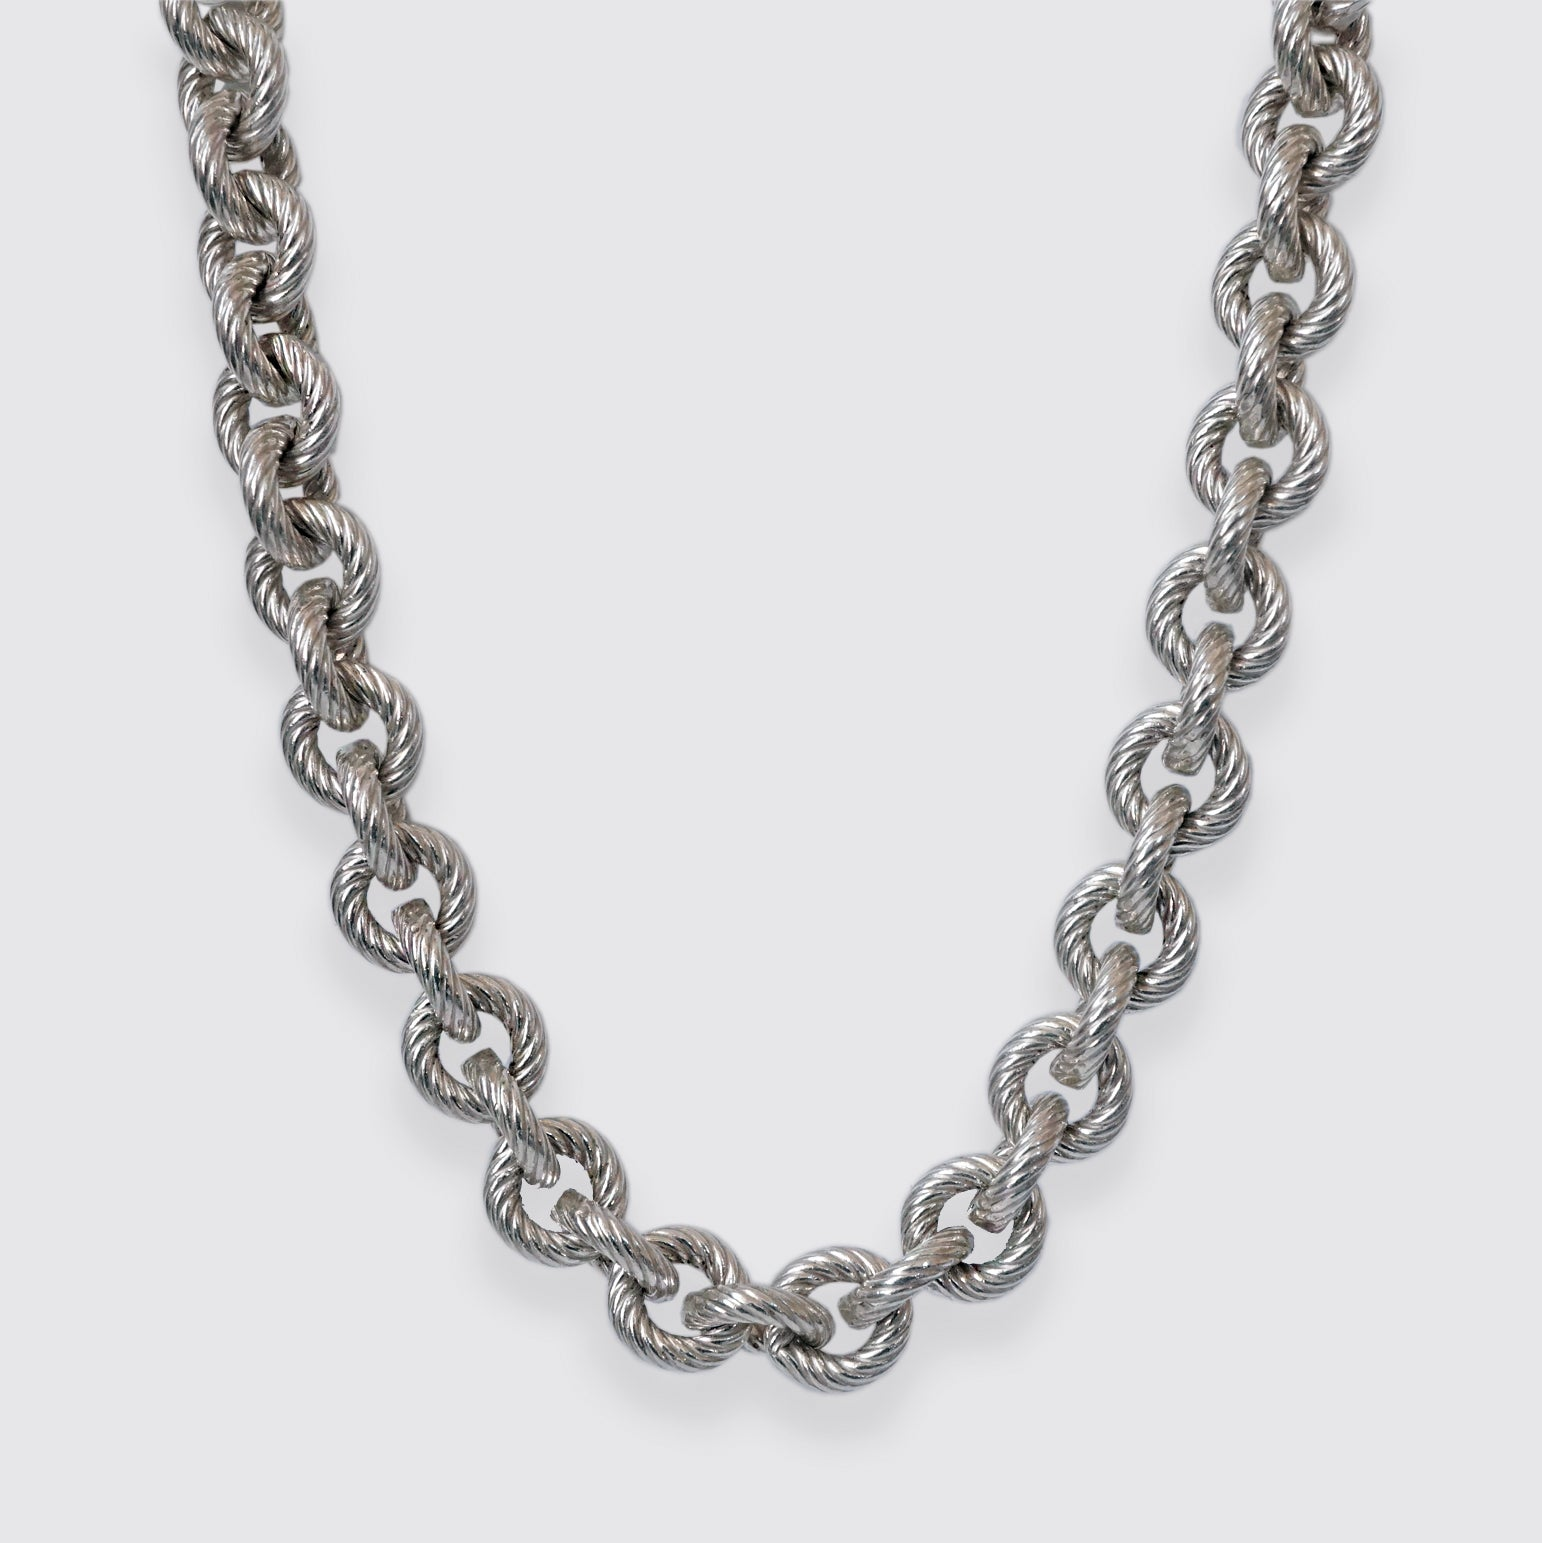 Sailor Cable Twist Chain Necklace, 6.8mm